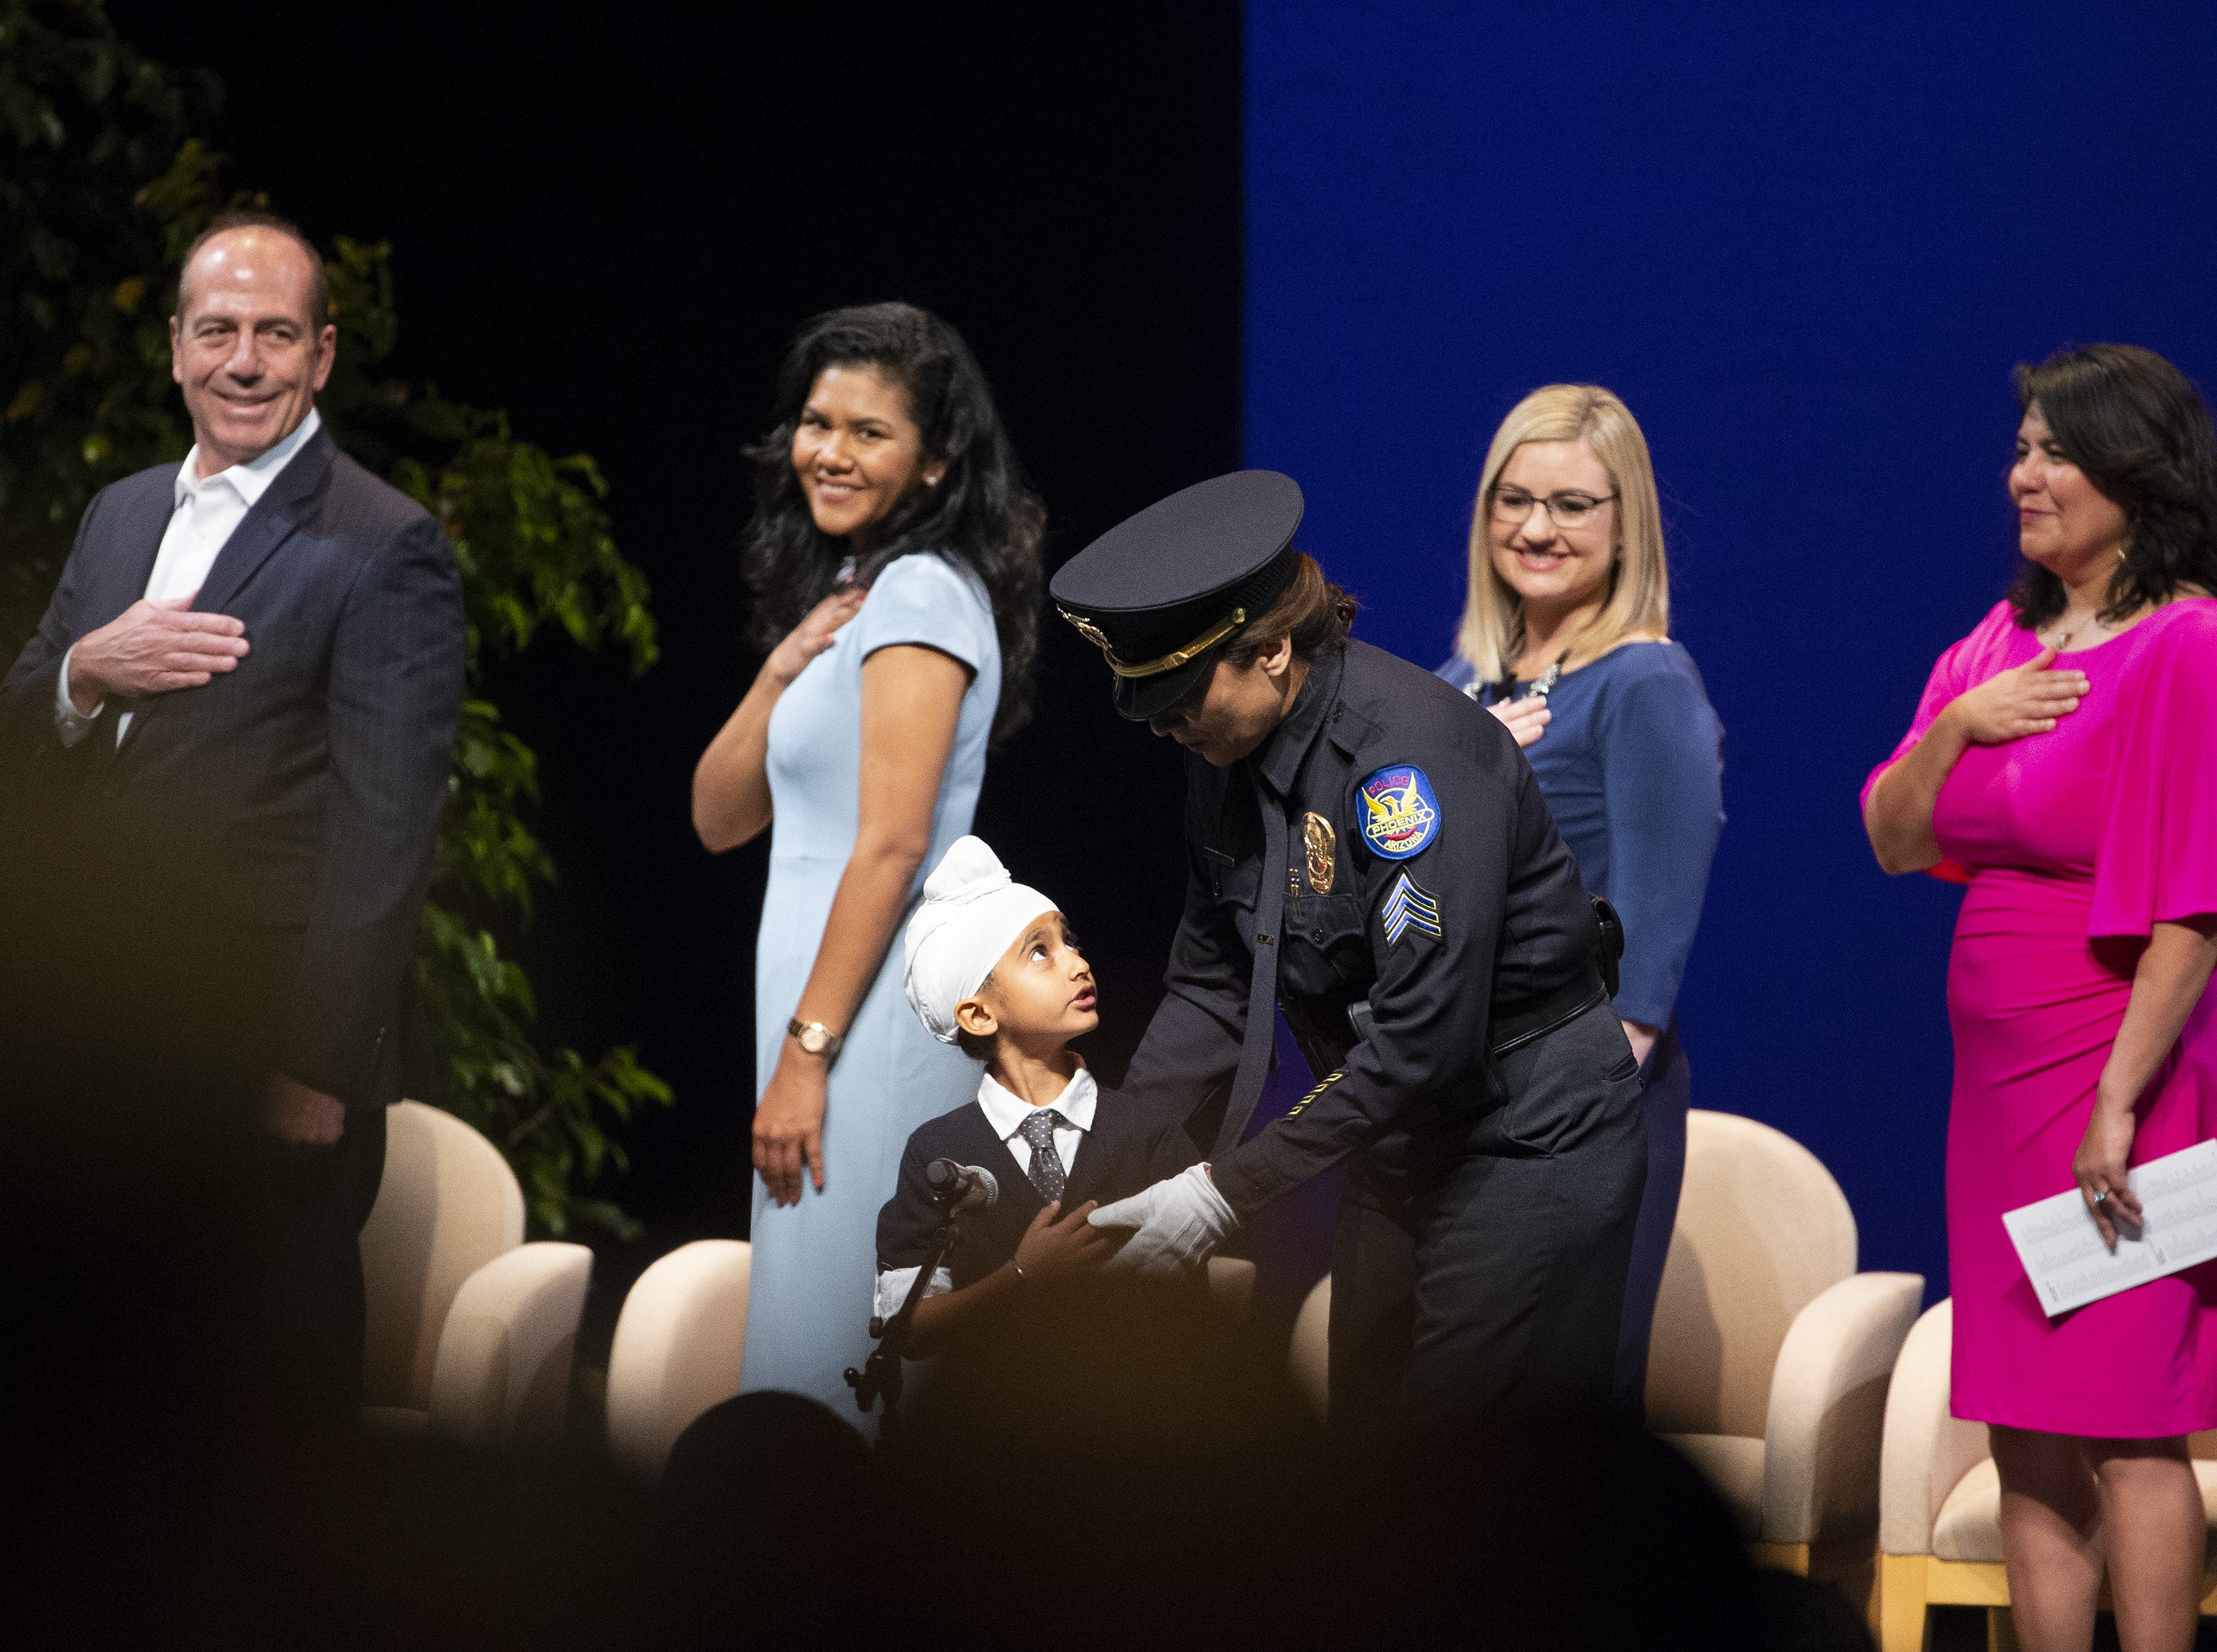 Anaik Singh Sachdev prepares to say the Pledge of Allegiance during Kate Gallego's inauguration ceremony as the new mayor of Phoenix on March 21 at the Orpheum Theatre in Phoenix, Ariz.